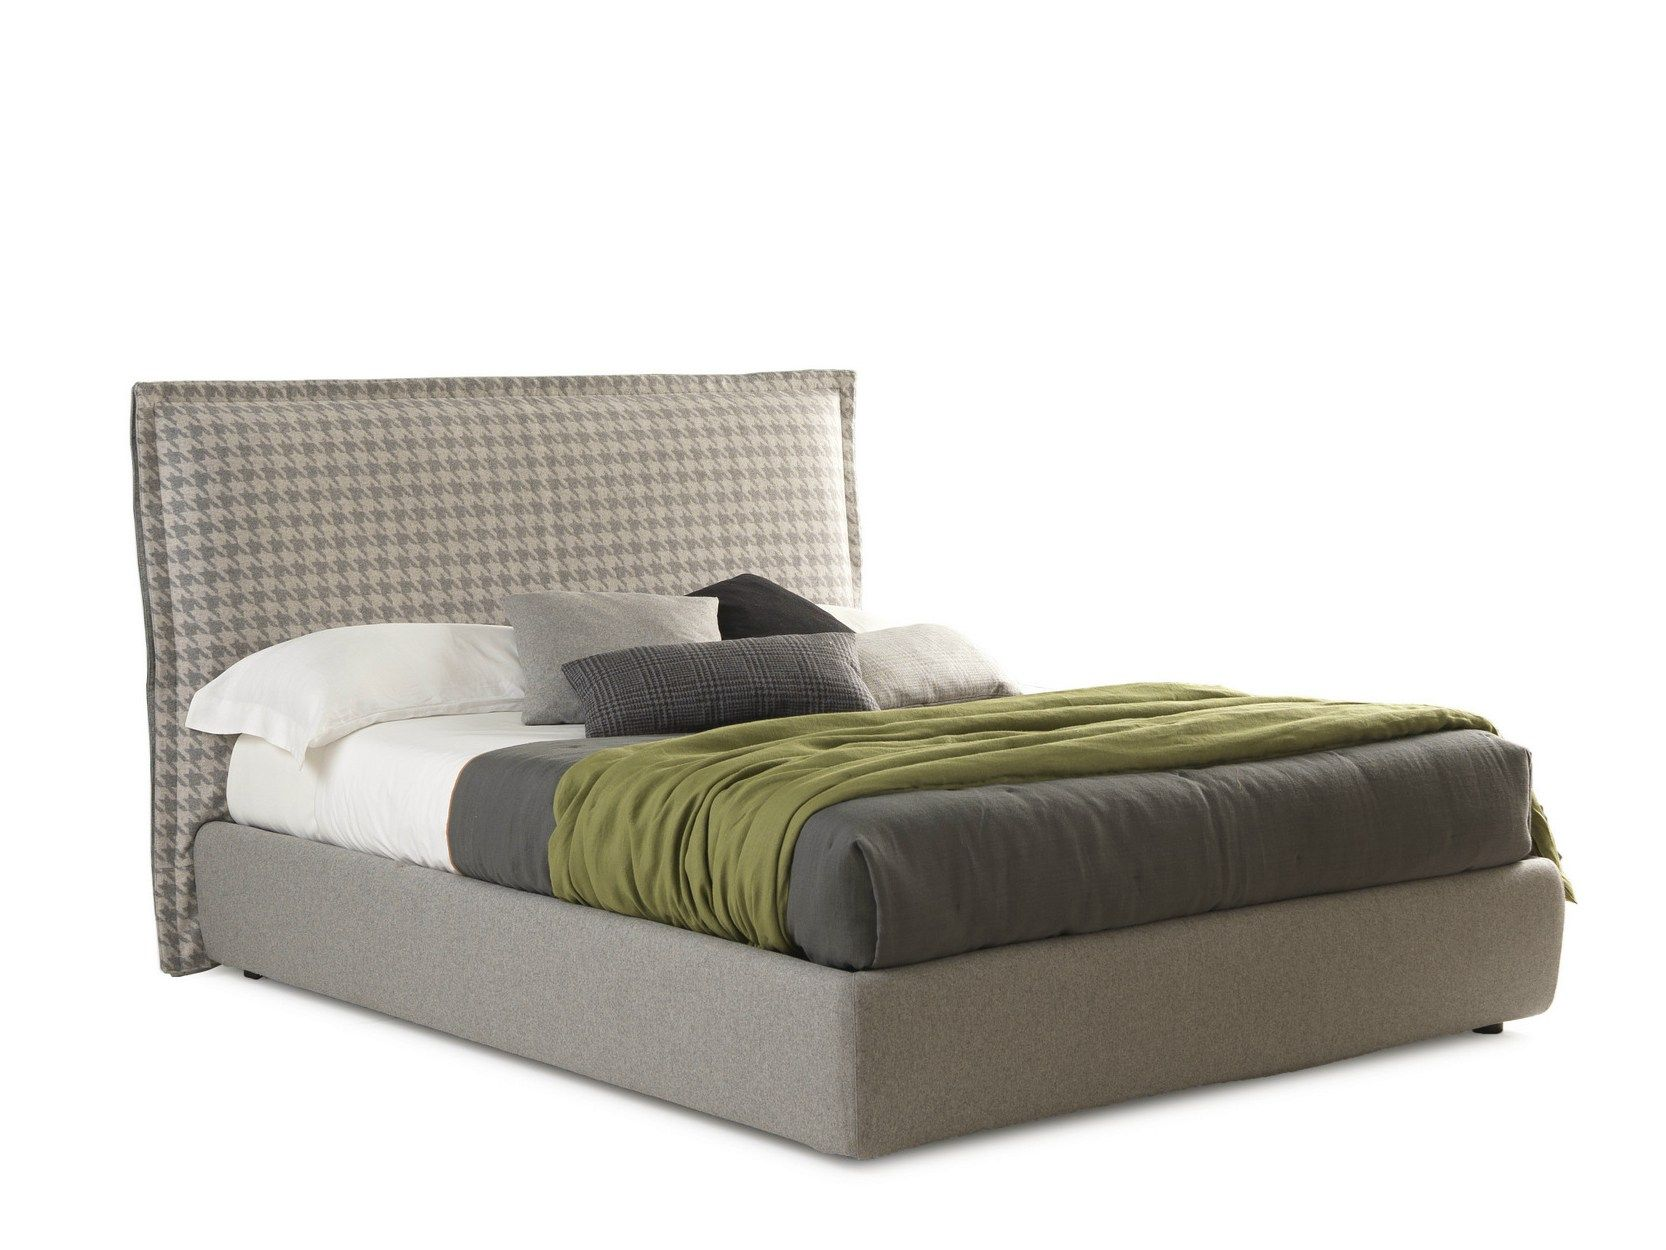 Fabric Double Bed With High Headboard Handsome Big Handsome